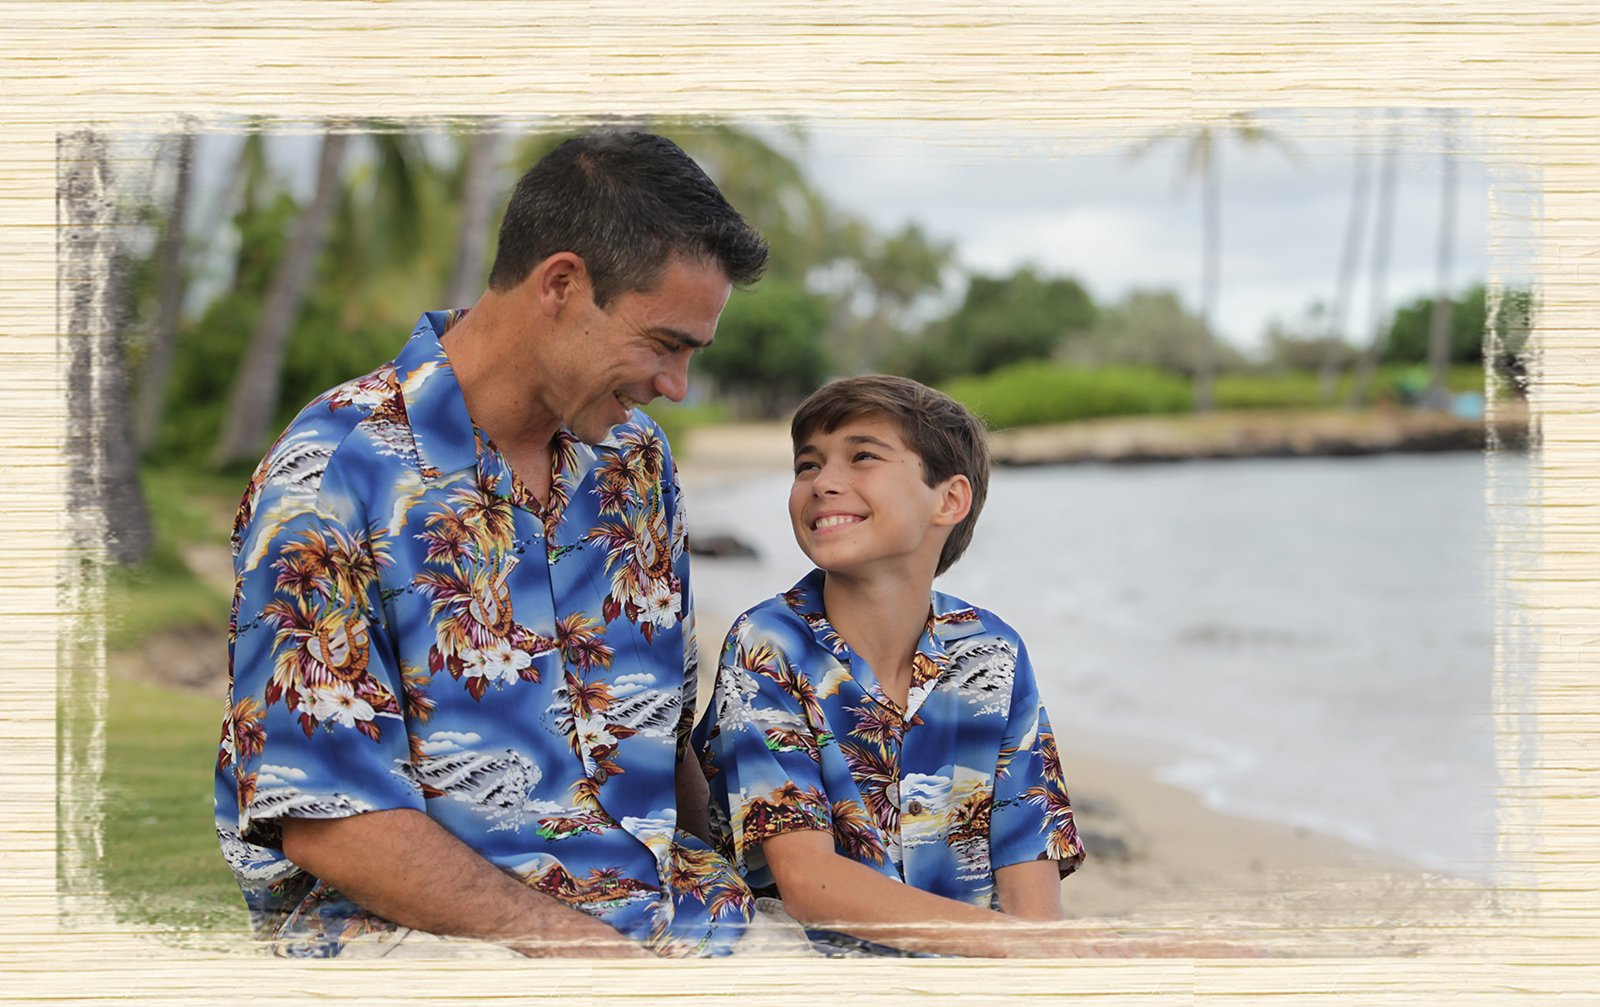 Hilo Hattie - The Store Of Hawaii | Sharing Aloha For Over 50 Years